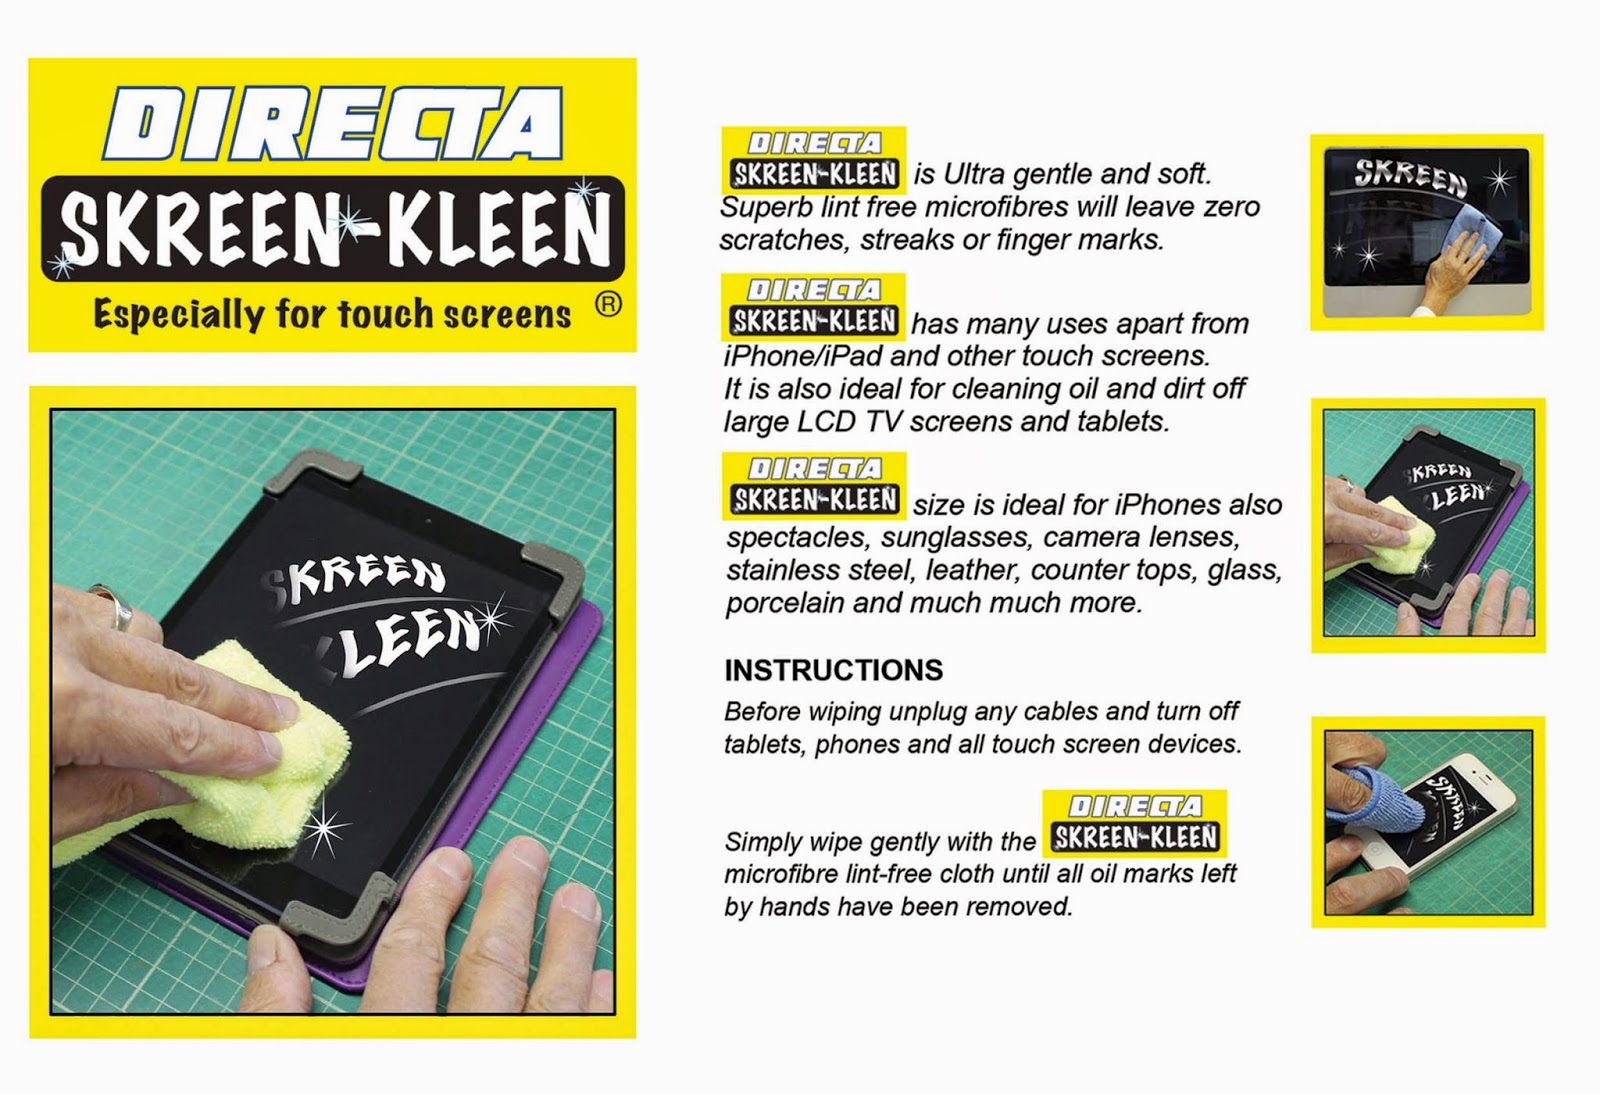 Gaffa Skreen Kleen cloths are gentle and soft, lint free and will leave no scratches, streaks or finger marks which make them an ideal cloth for cleaning your screens. Perfect for cleaning up computer screens, ipads, mobile phone screens, sunglasses and much much more.